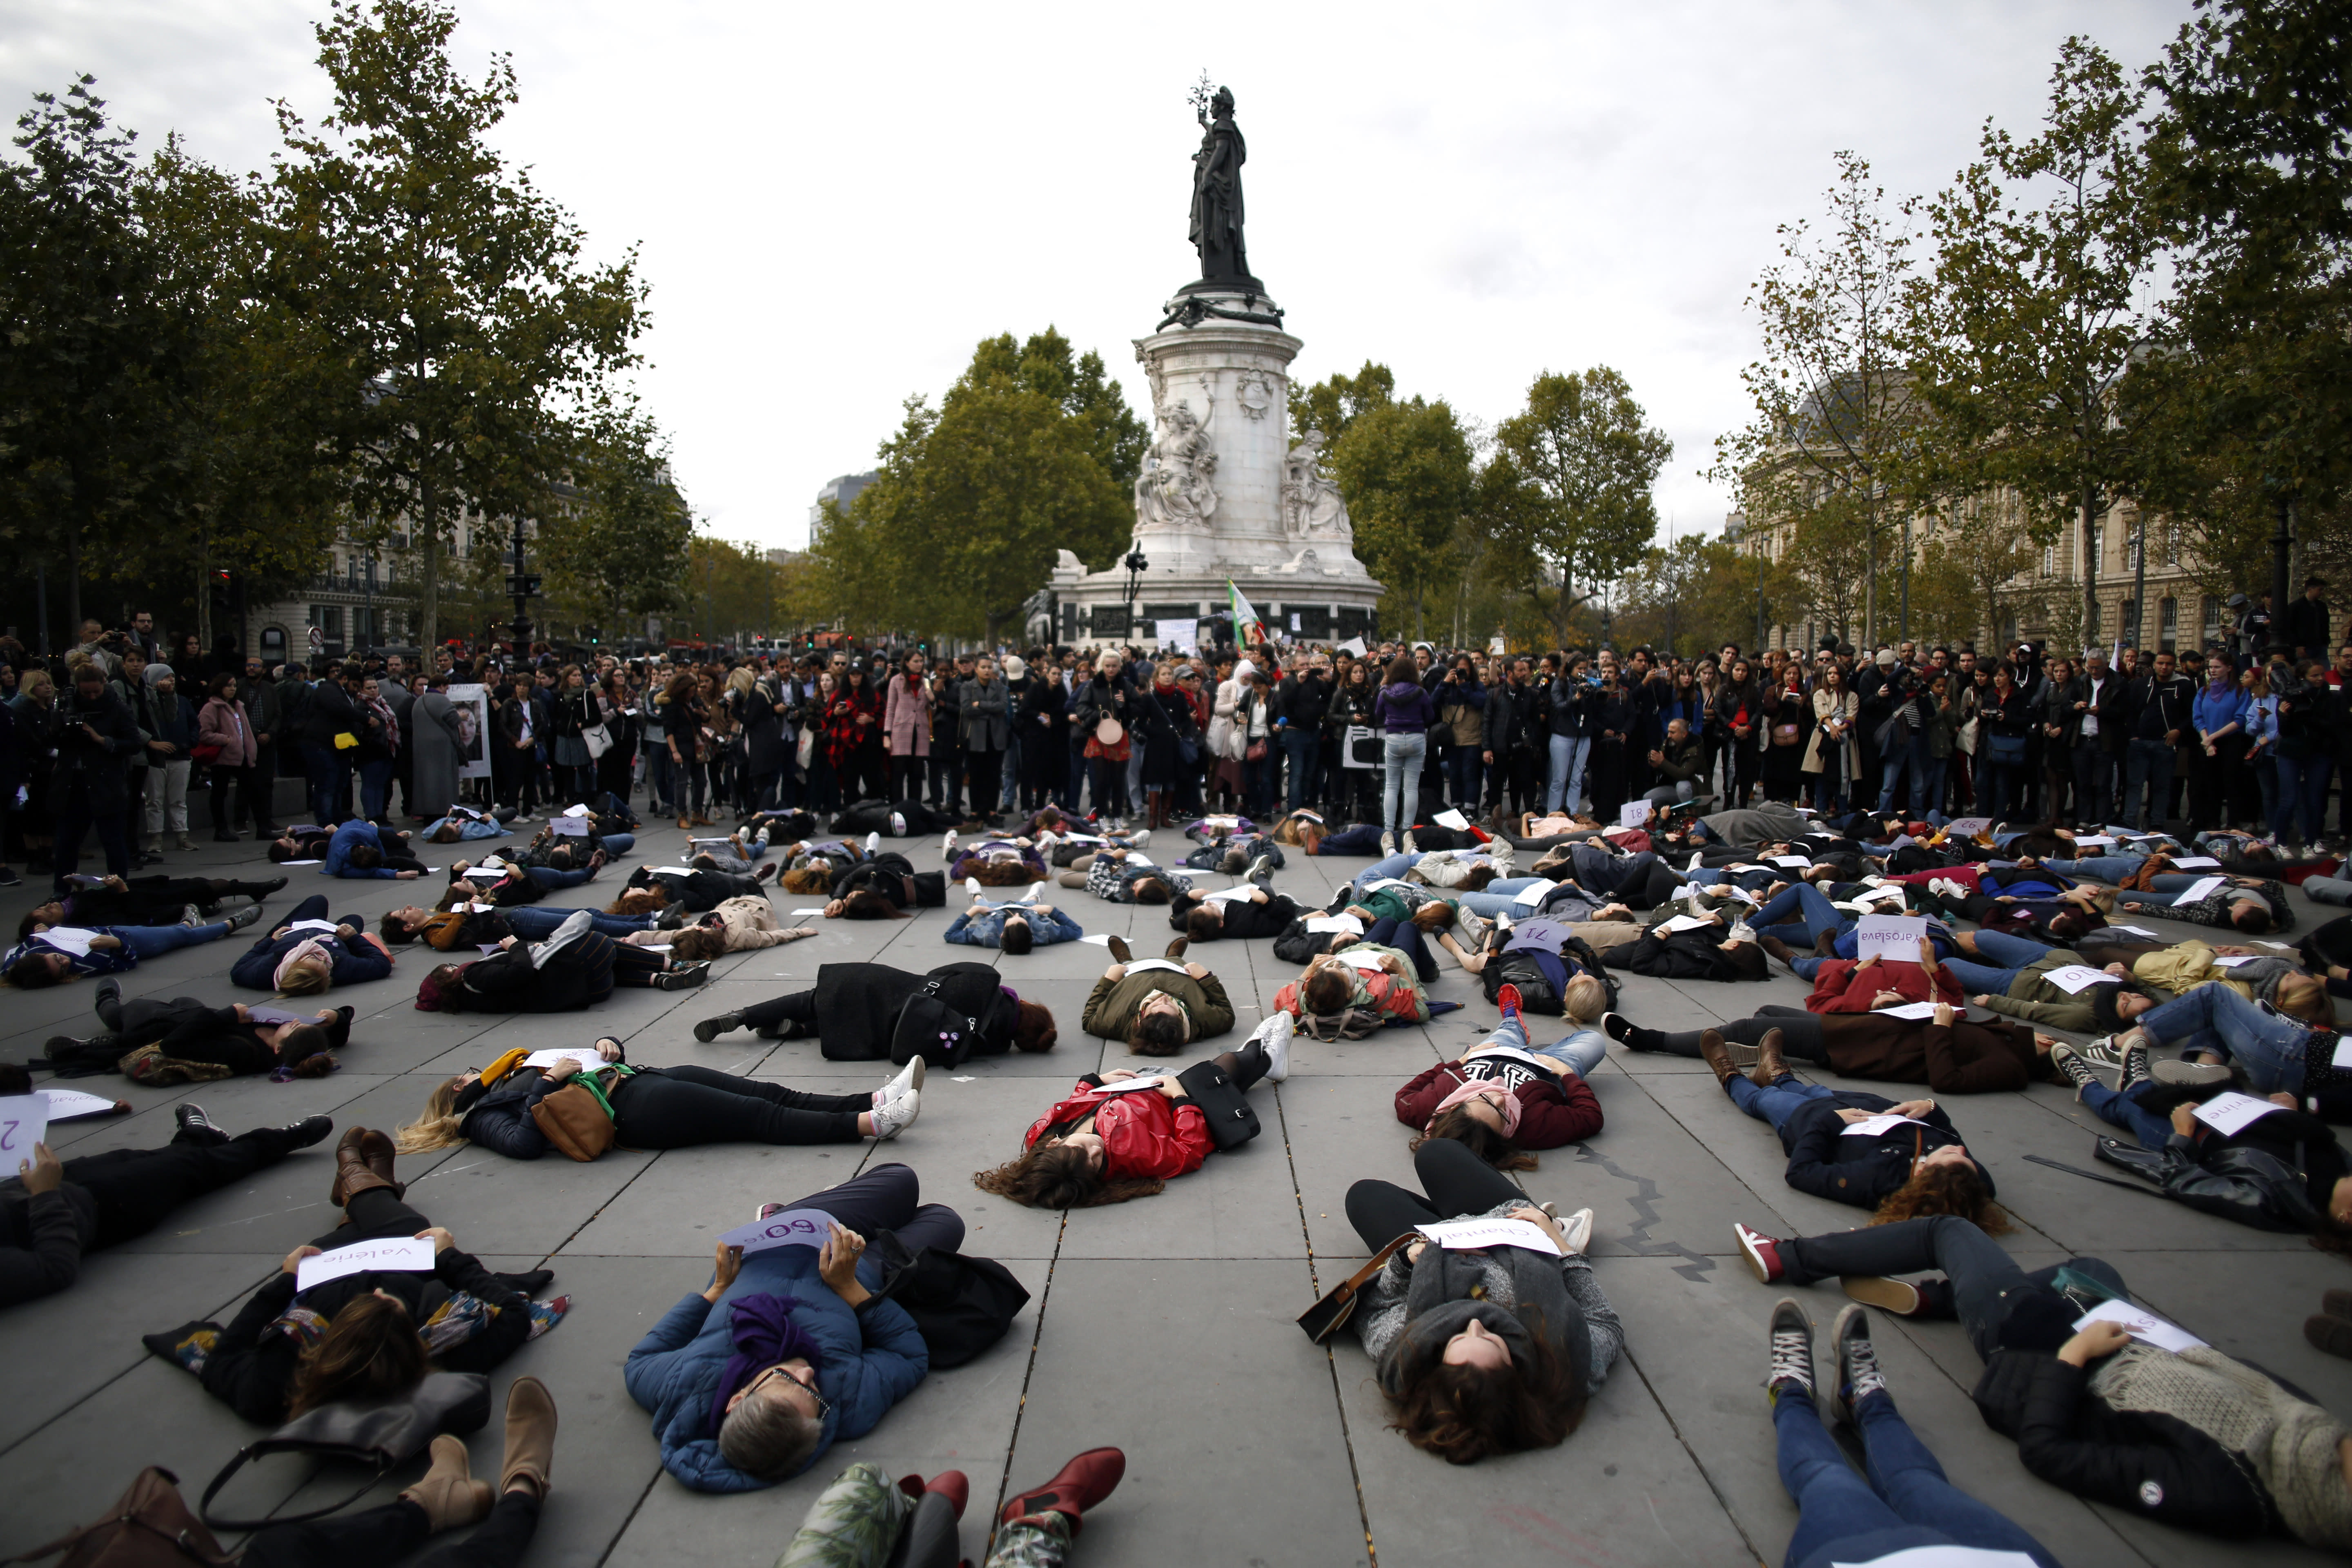 FILE - In this Oct.19, 2019 file photo, women stage a die-in while holding placards with the names of women killed by their partners, during a protest, in Paris. A French government commission examining domestic violence is recommending that authorities now confiscate firearms from individuals following the first complaint of family violence levied against them. In France, a woman is killed by her partner every three days, according to government statistics. (AP Photo/Thibault Camus, File)